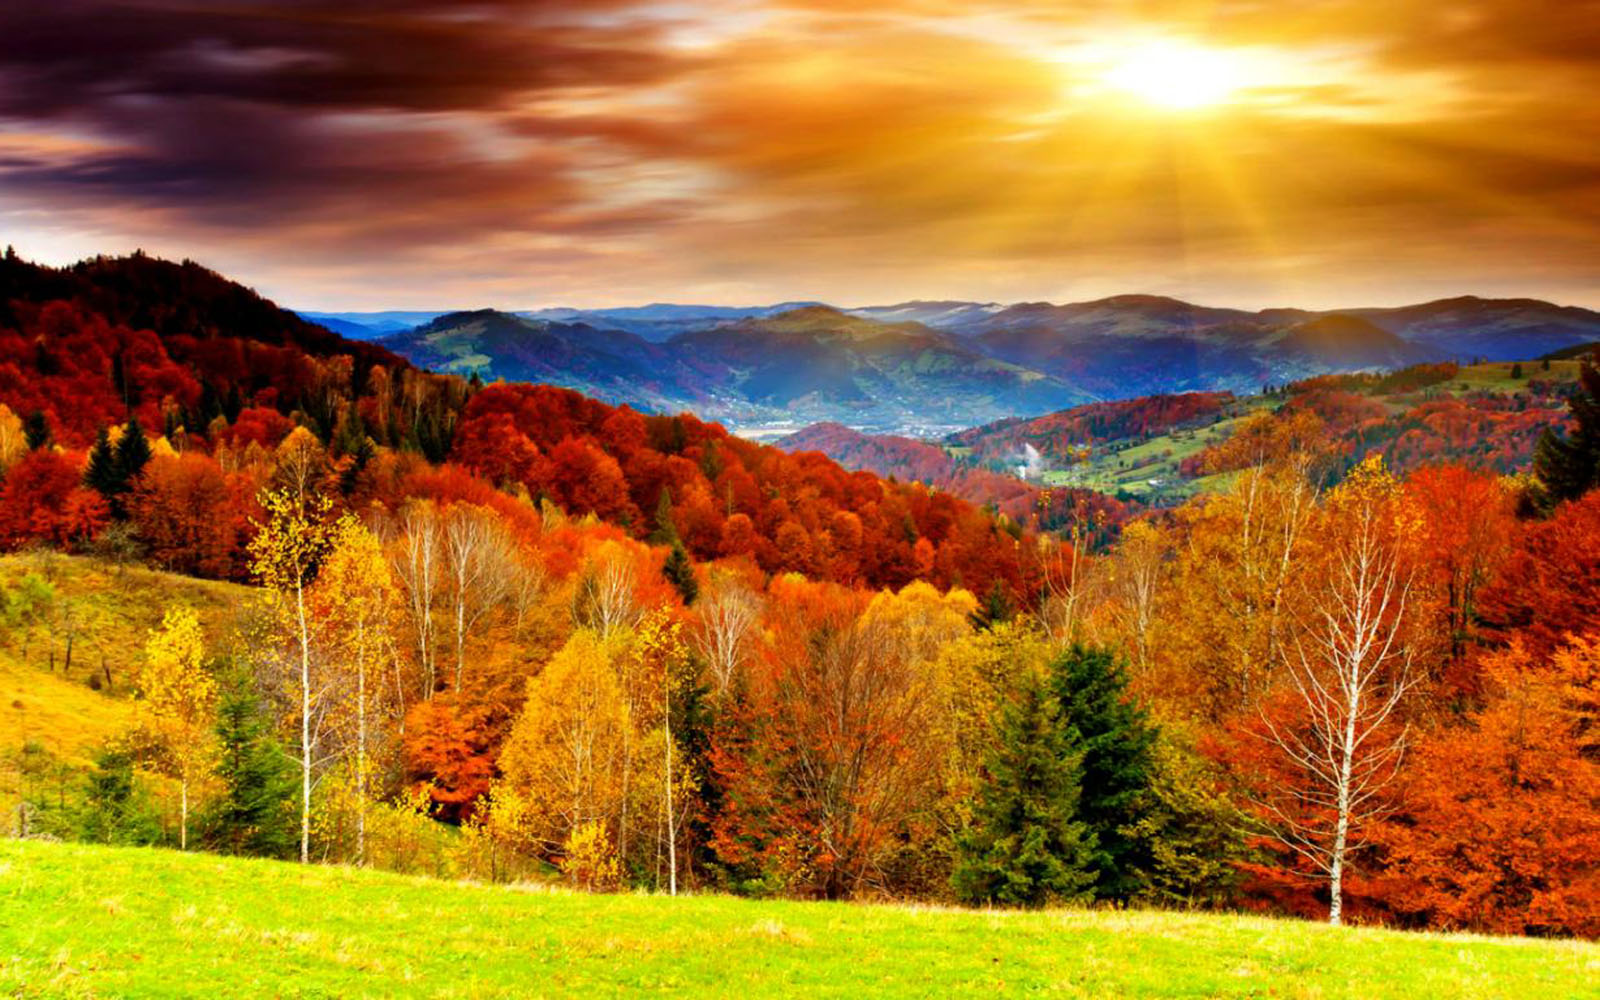 Scenery Wallpapers Backgrounds Photos Images andPictures for 1600x1000